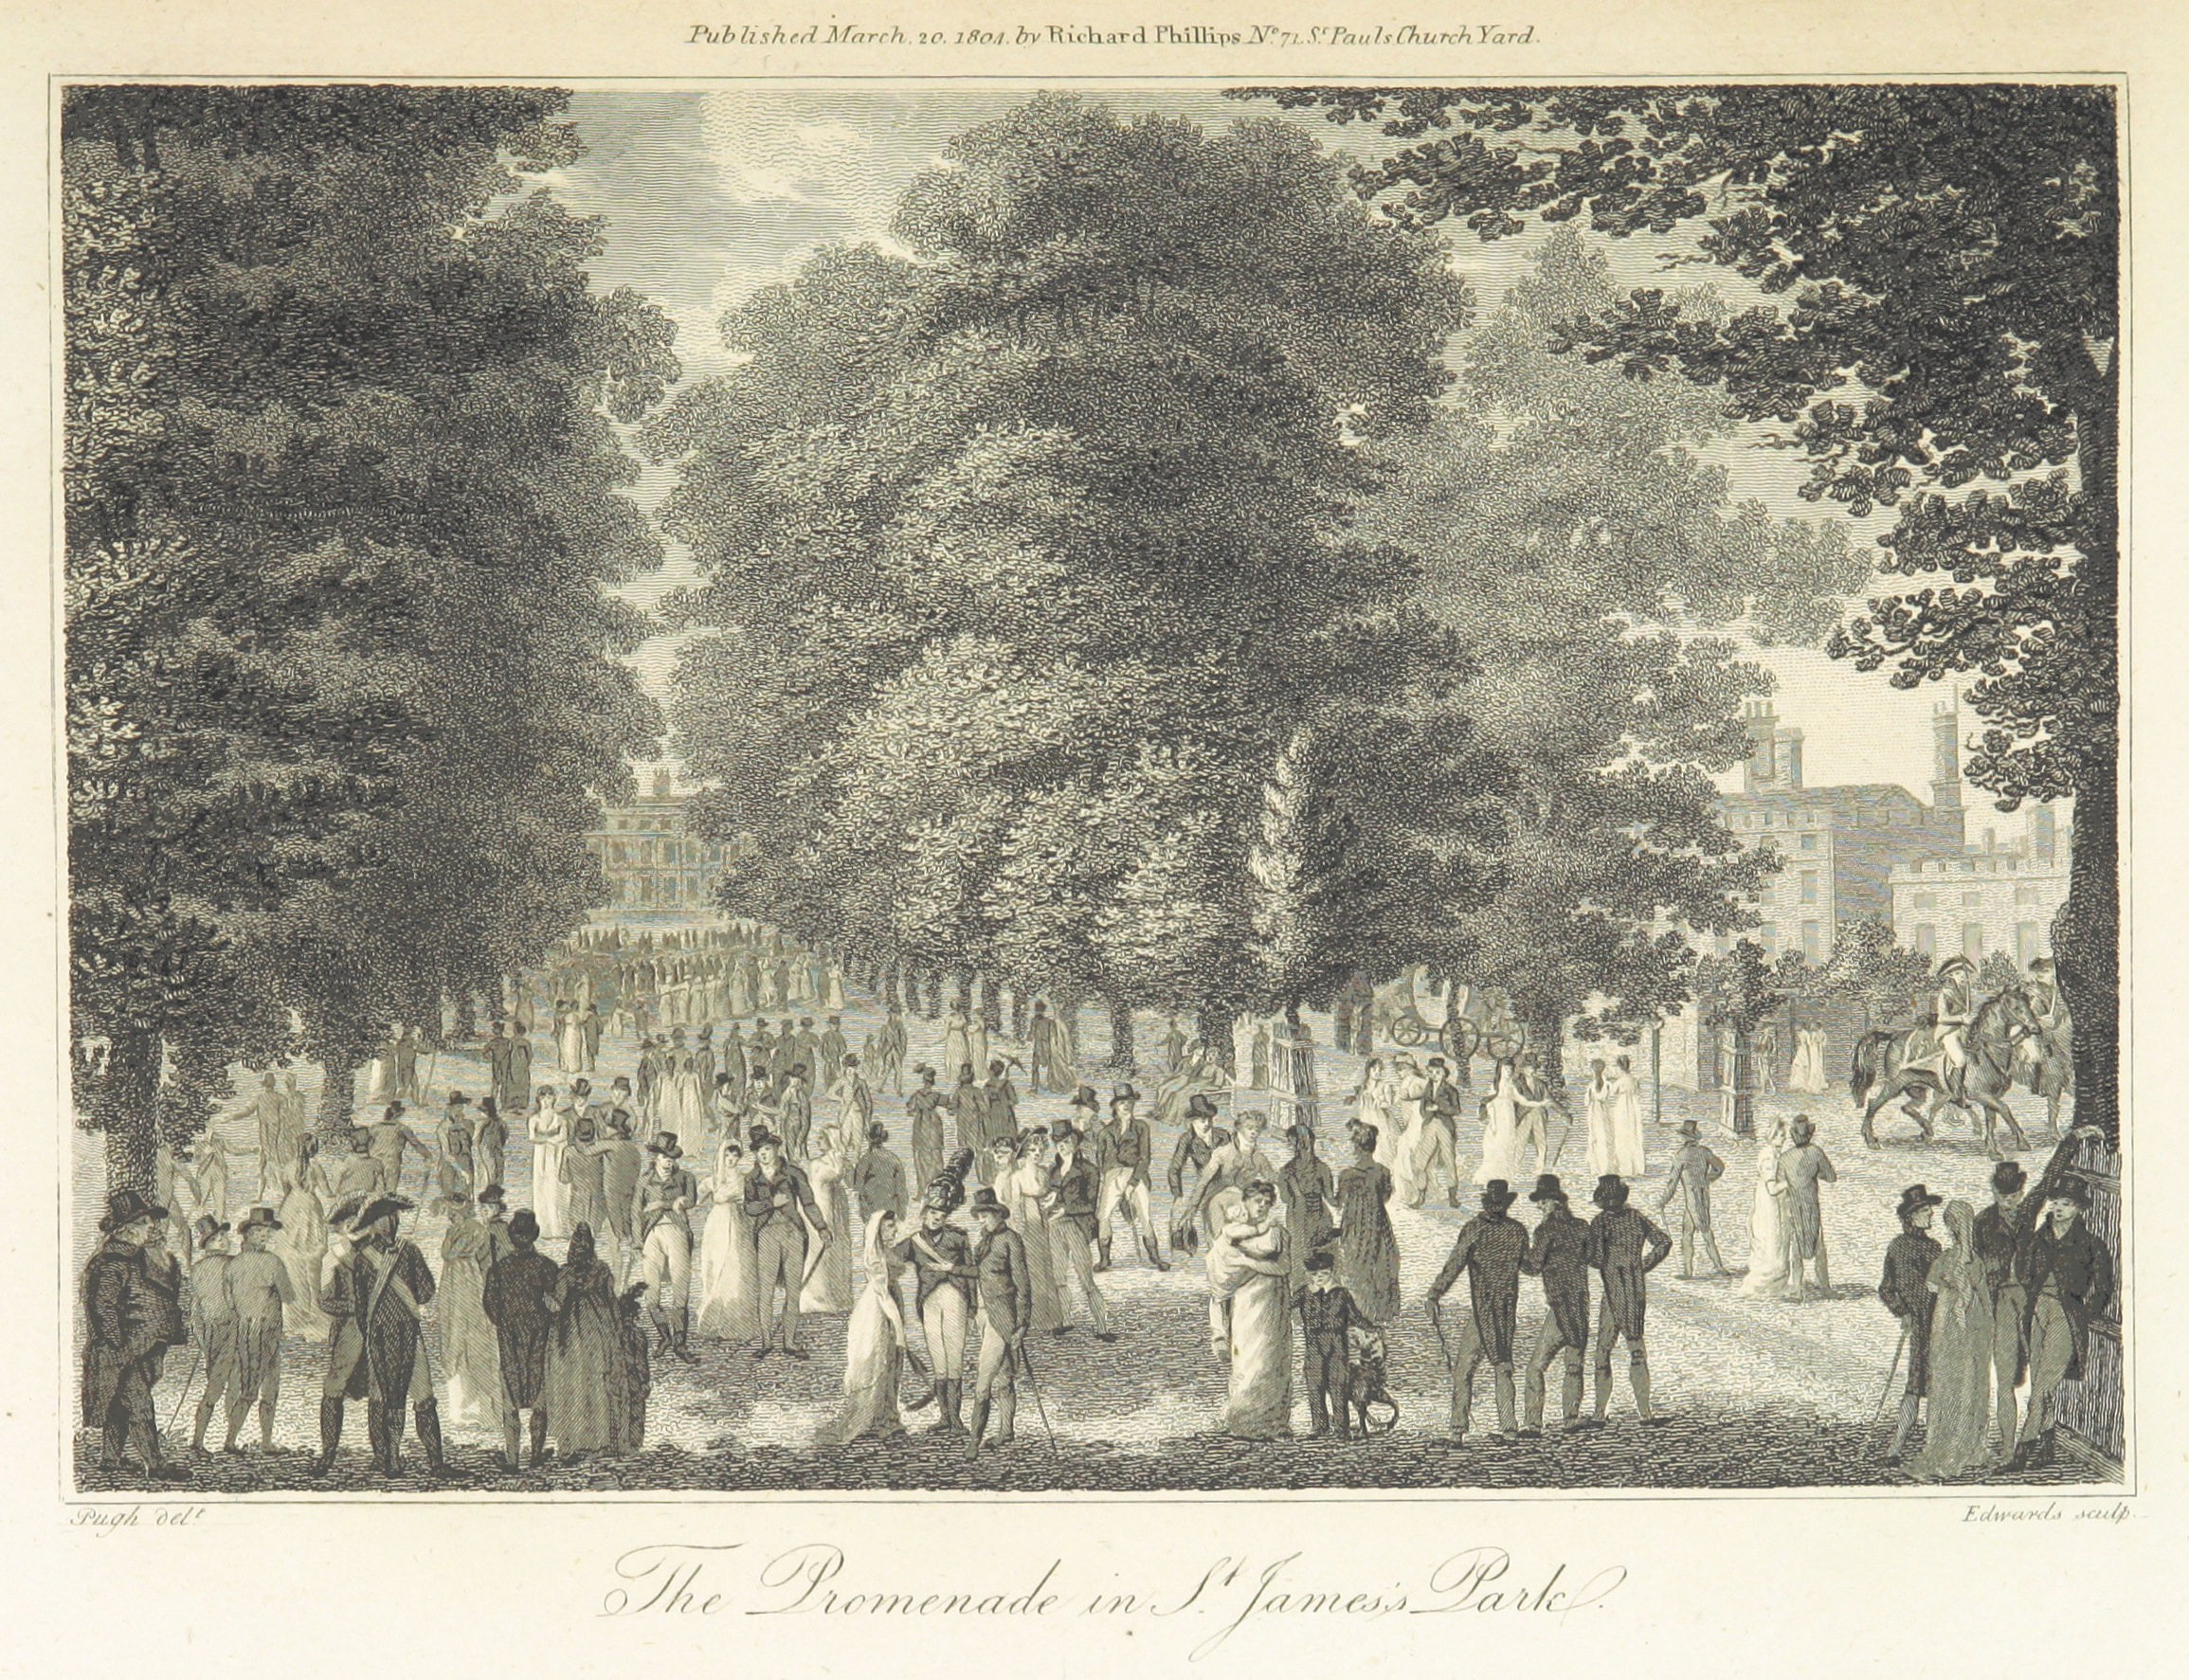 Phillips(1804)_p269_-_The_Promenade_in_St_Jamess_Park